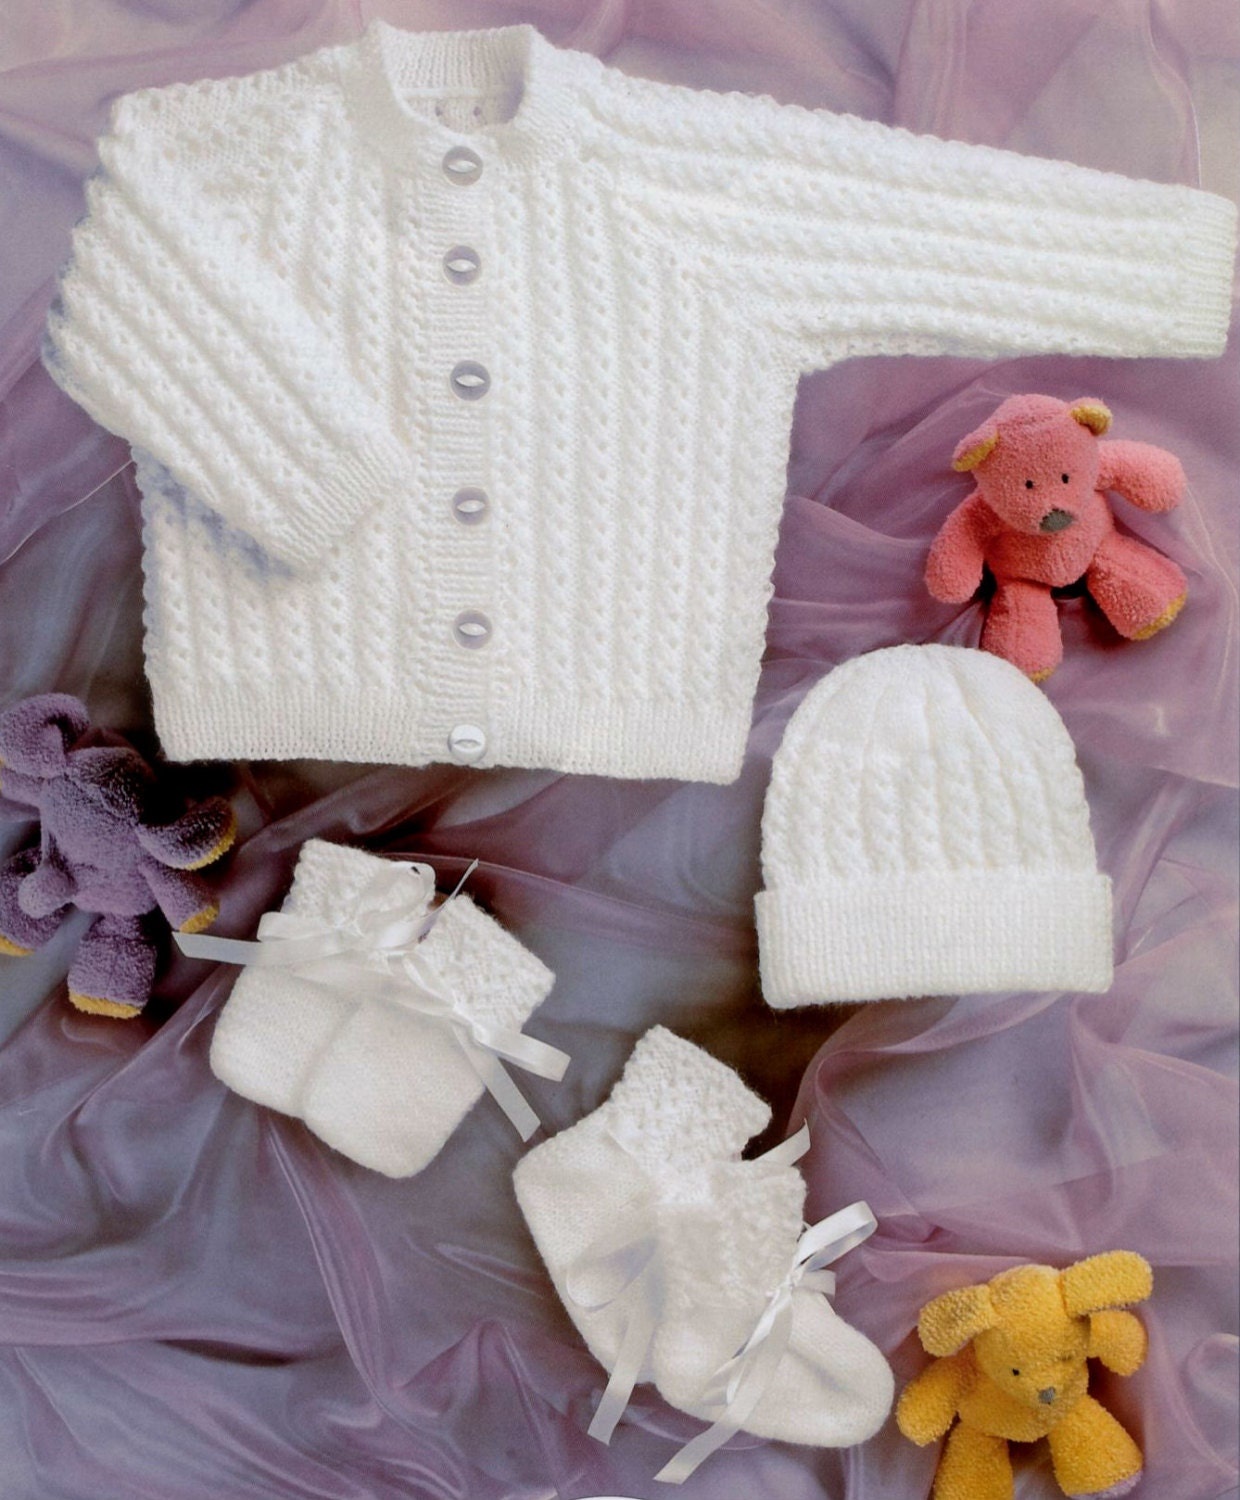 Knitting Patterns For Baby Mittens And Booties : Knit Baby Jacket Cardigan Hat Mittens Booties Vintage Pattern